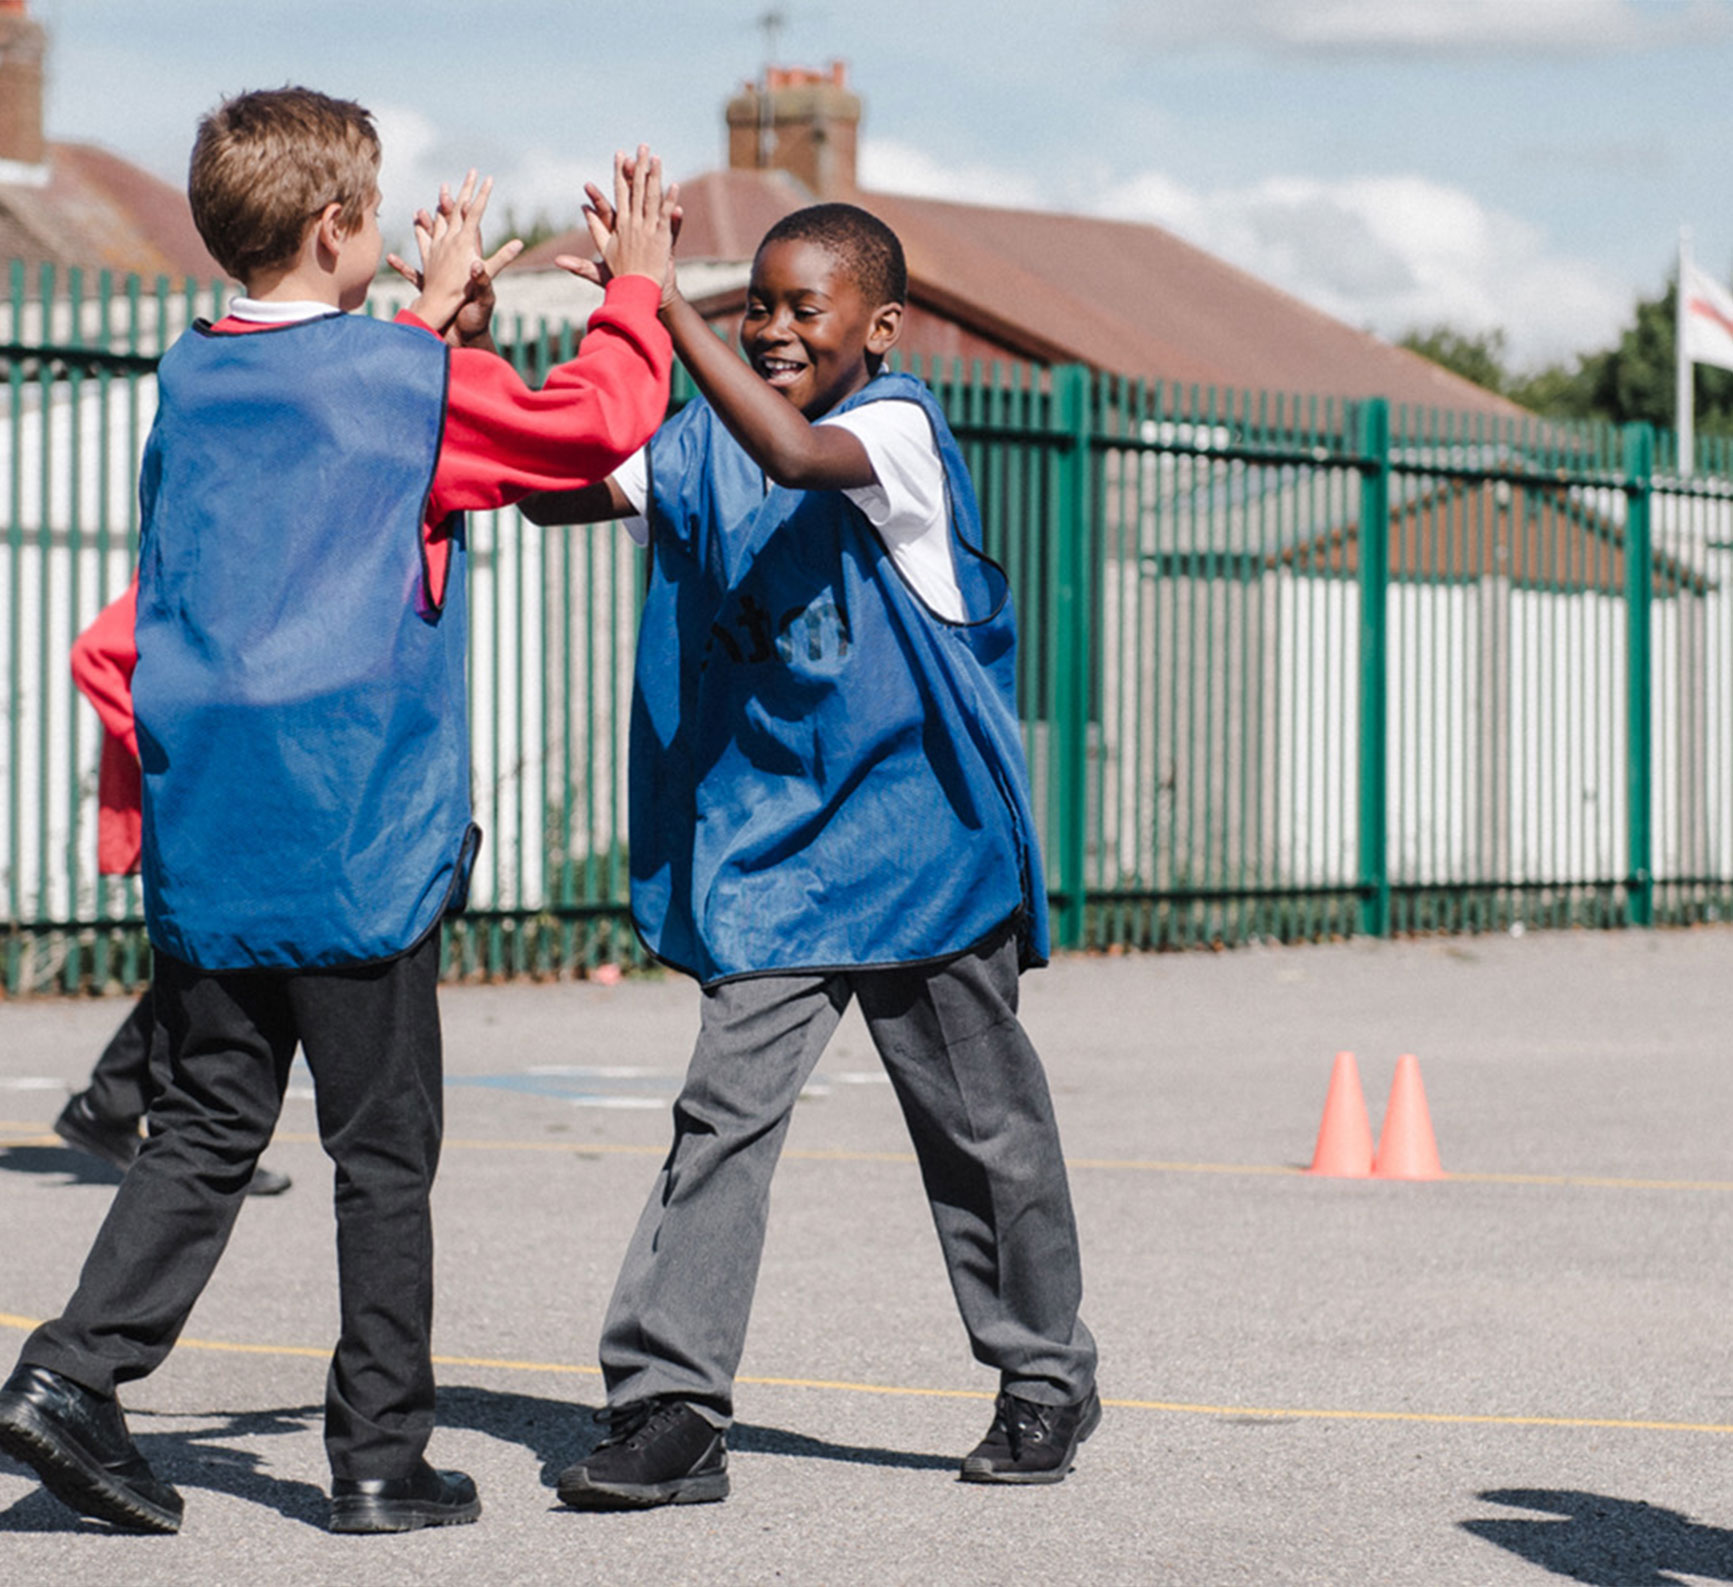 Two boys high five in the playground